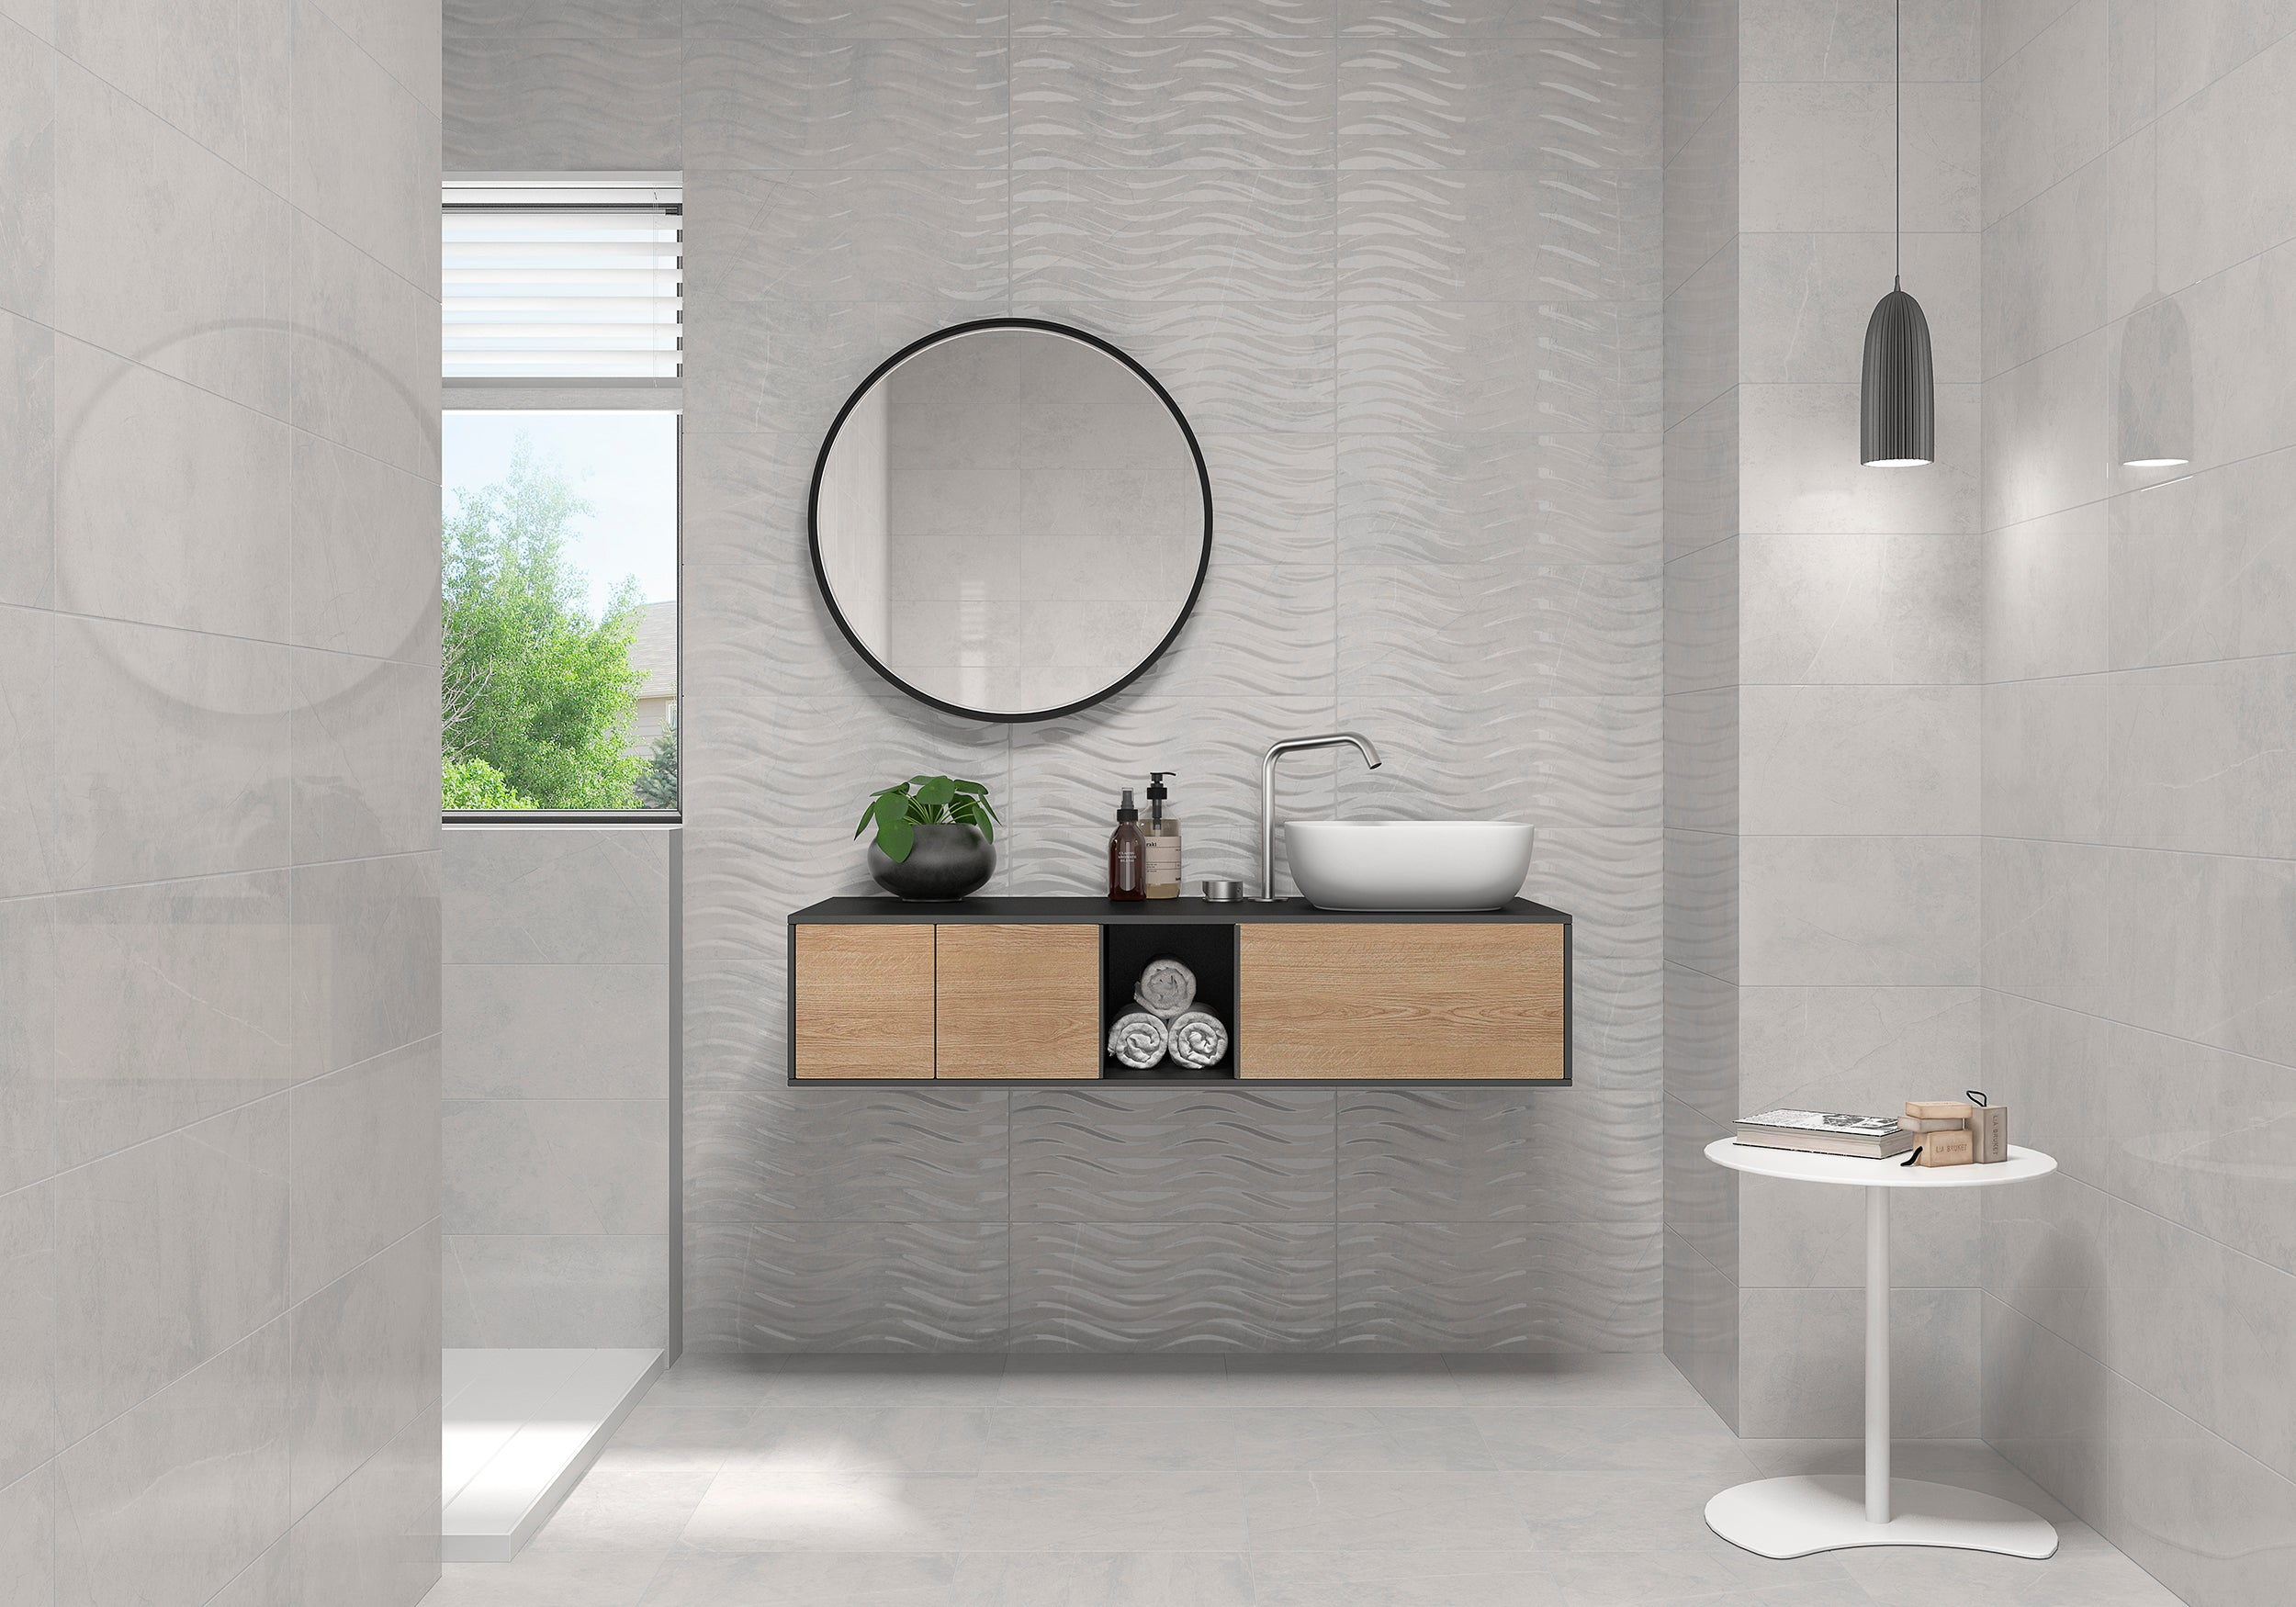 Buckingham Bend Perla Decor - Faiola Tile